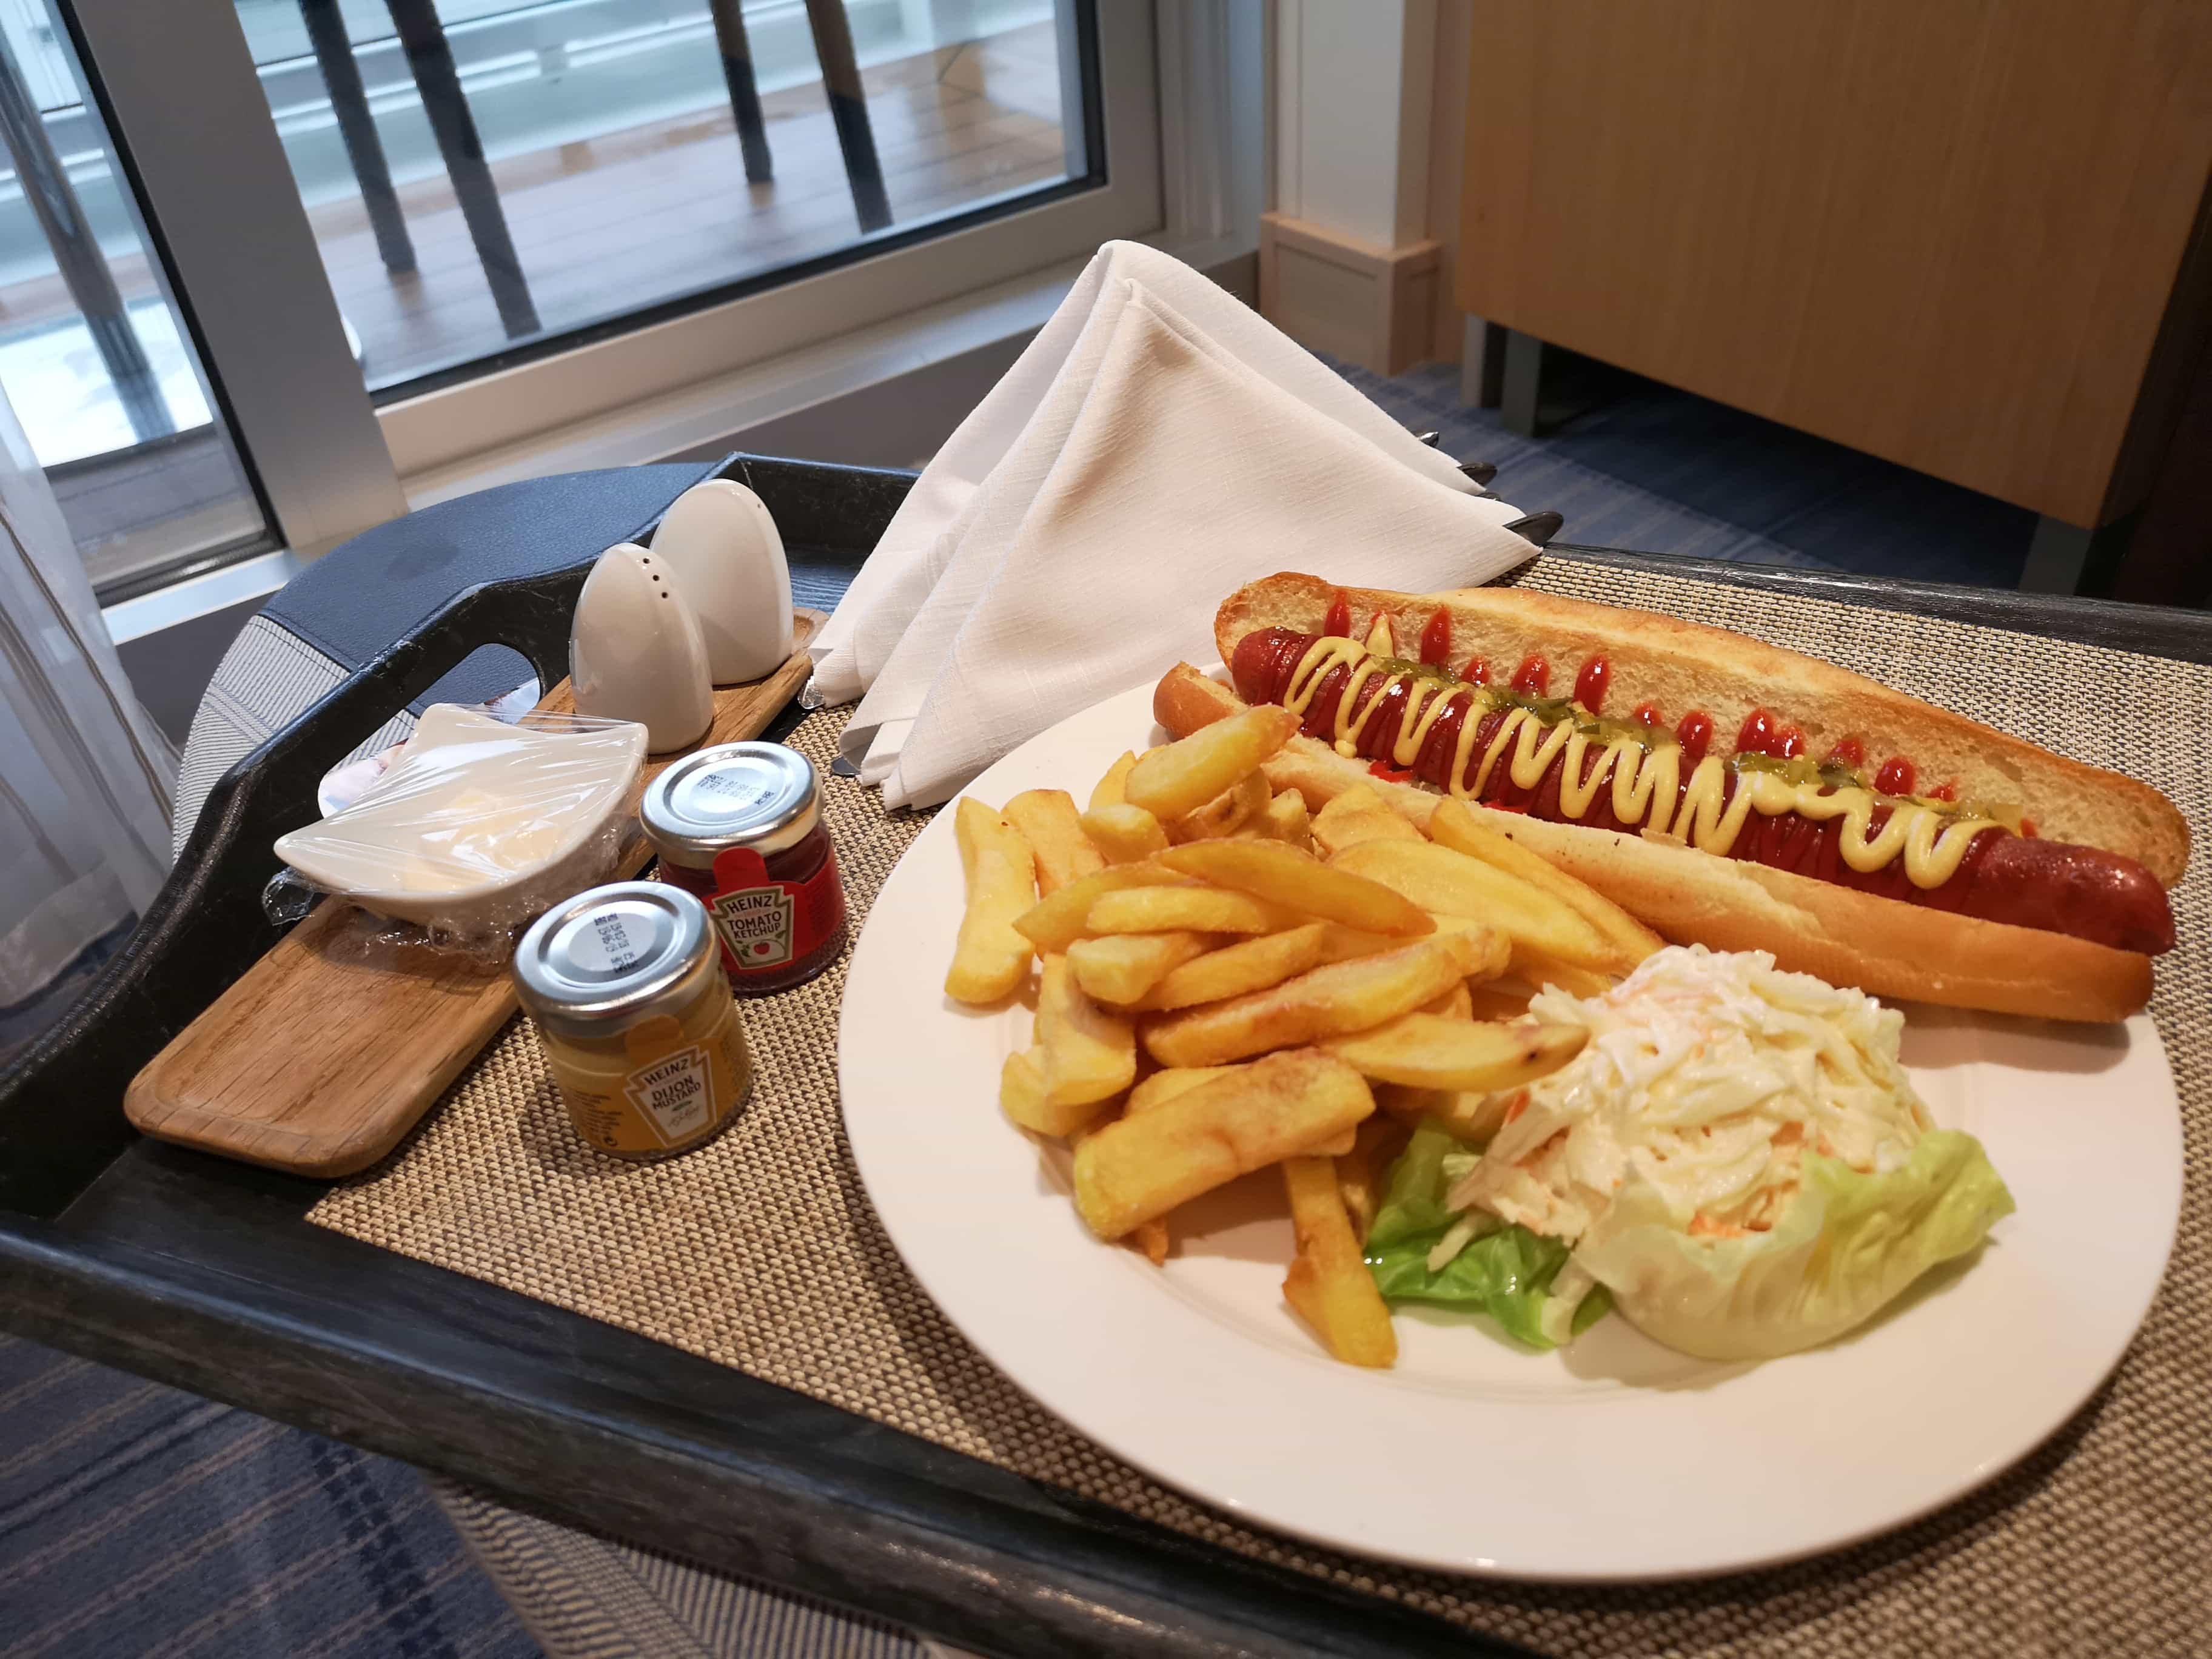 Viking Cruises Sea Room Service Hot Dog Burger Chips Coleslaw in Cabin